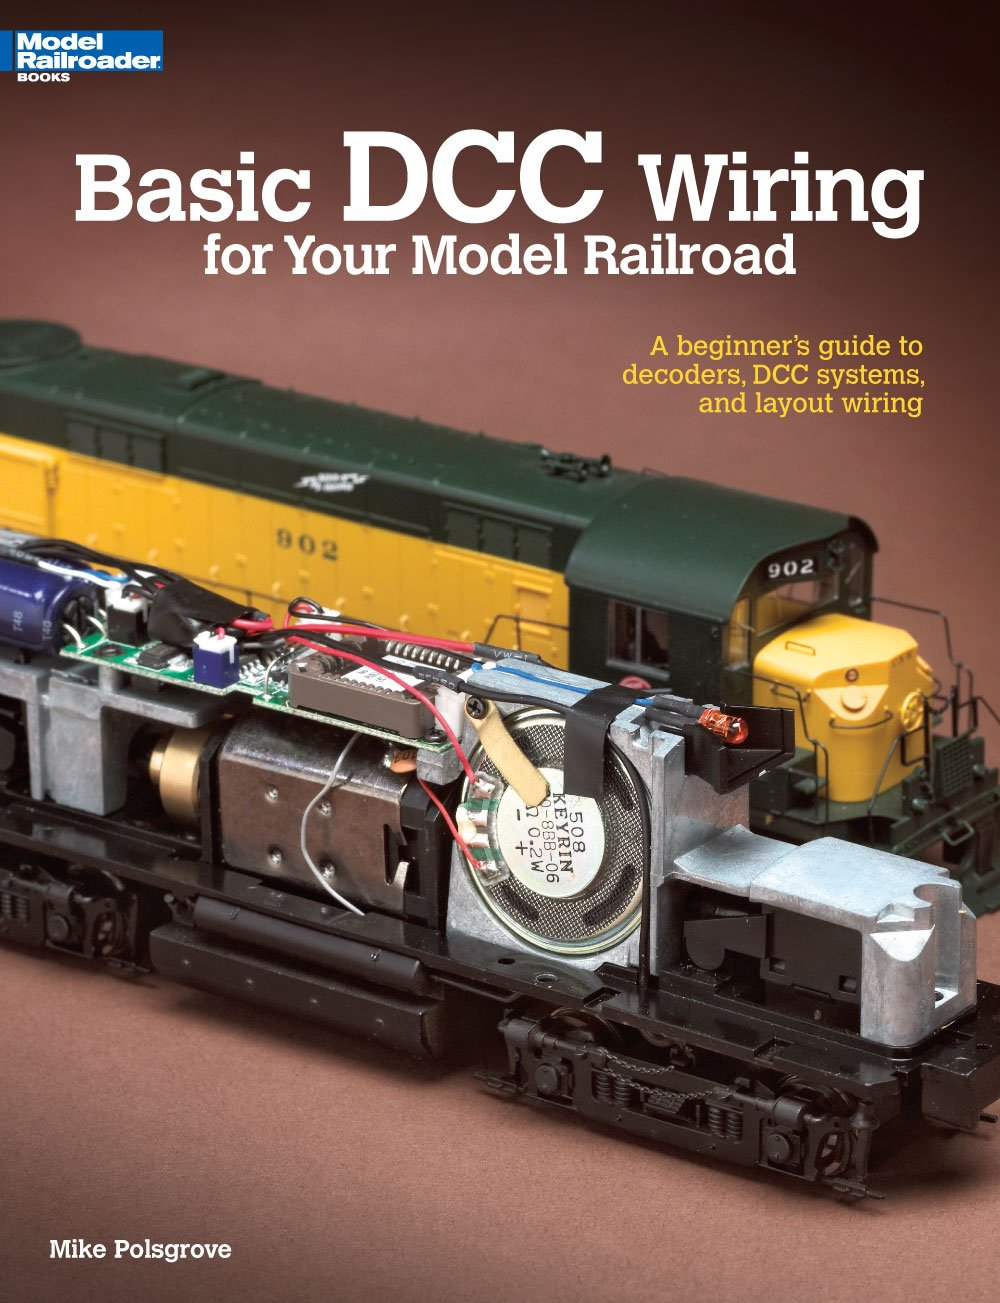 Dcc Track Wiring | Best Wiring Liry on locomotive technical drawings, locomotive maintenance, locomotive operating manuals, locomotive electrical, locomotive sketches, locomotive assembly, locomotive dimensions, locomotive suspension, locomotive tools, locomotive parts, locomotive battery, locomotive repair, locomotive engineering drawings, locomotive lights,